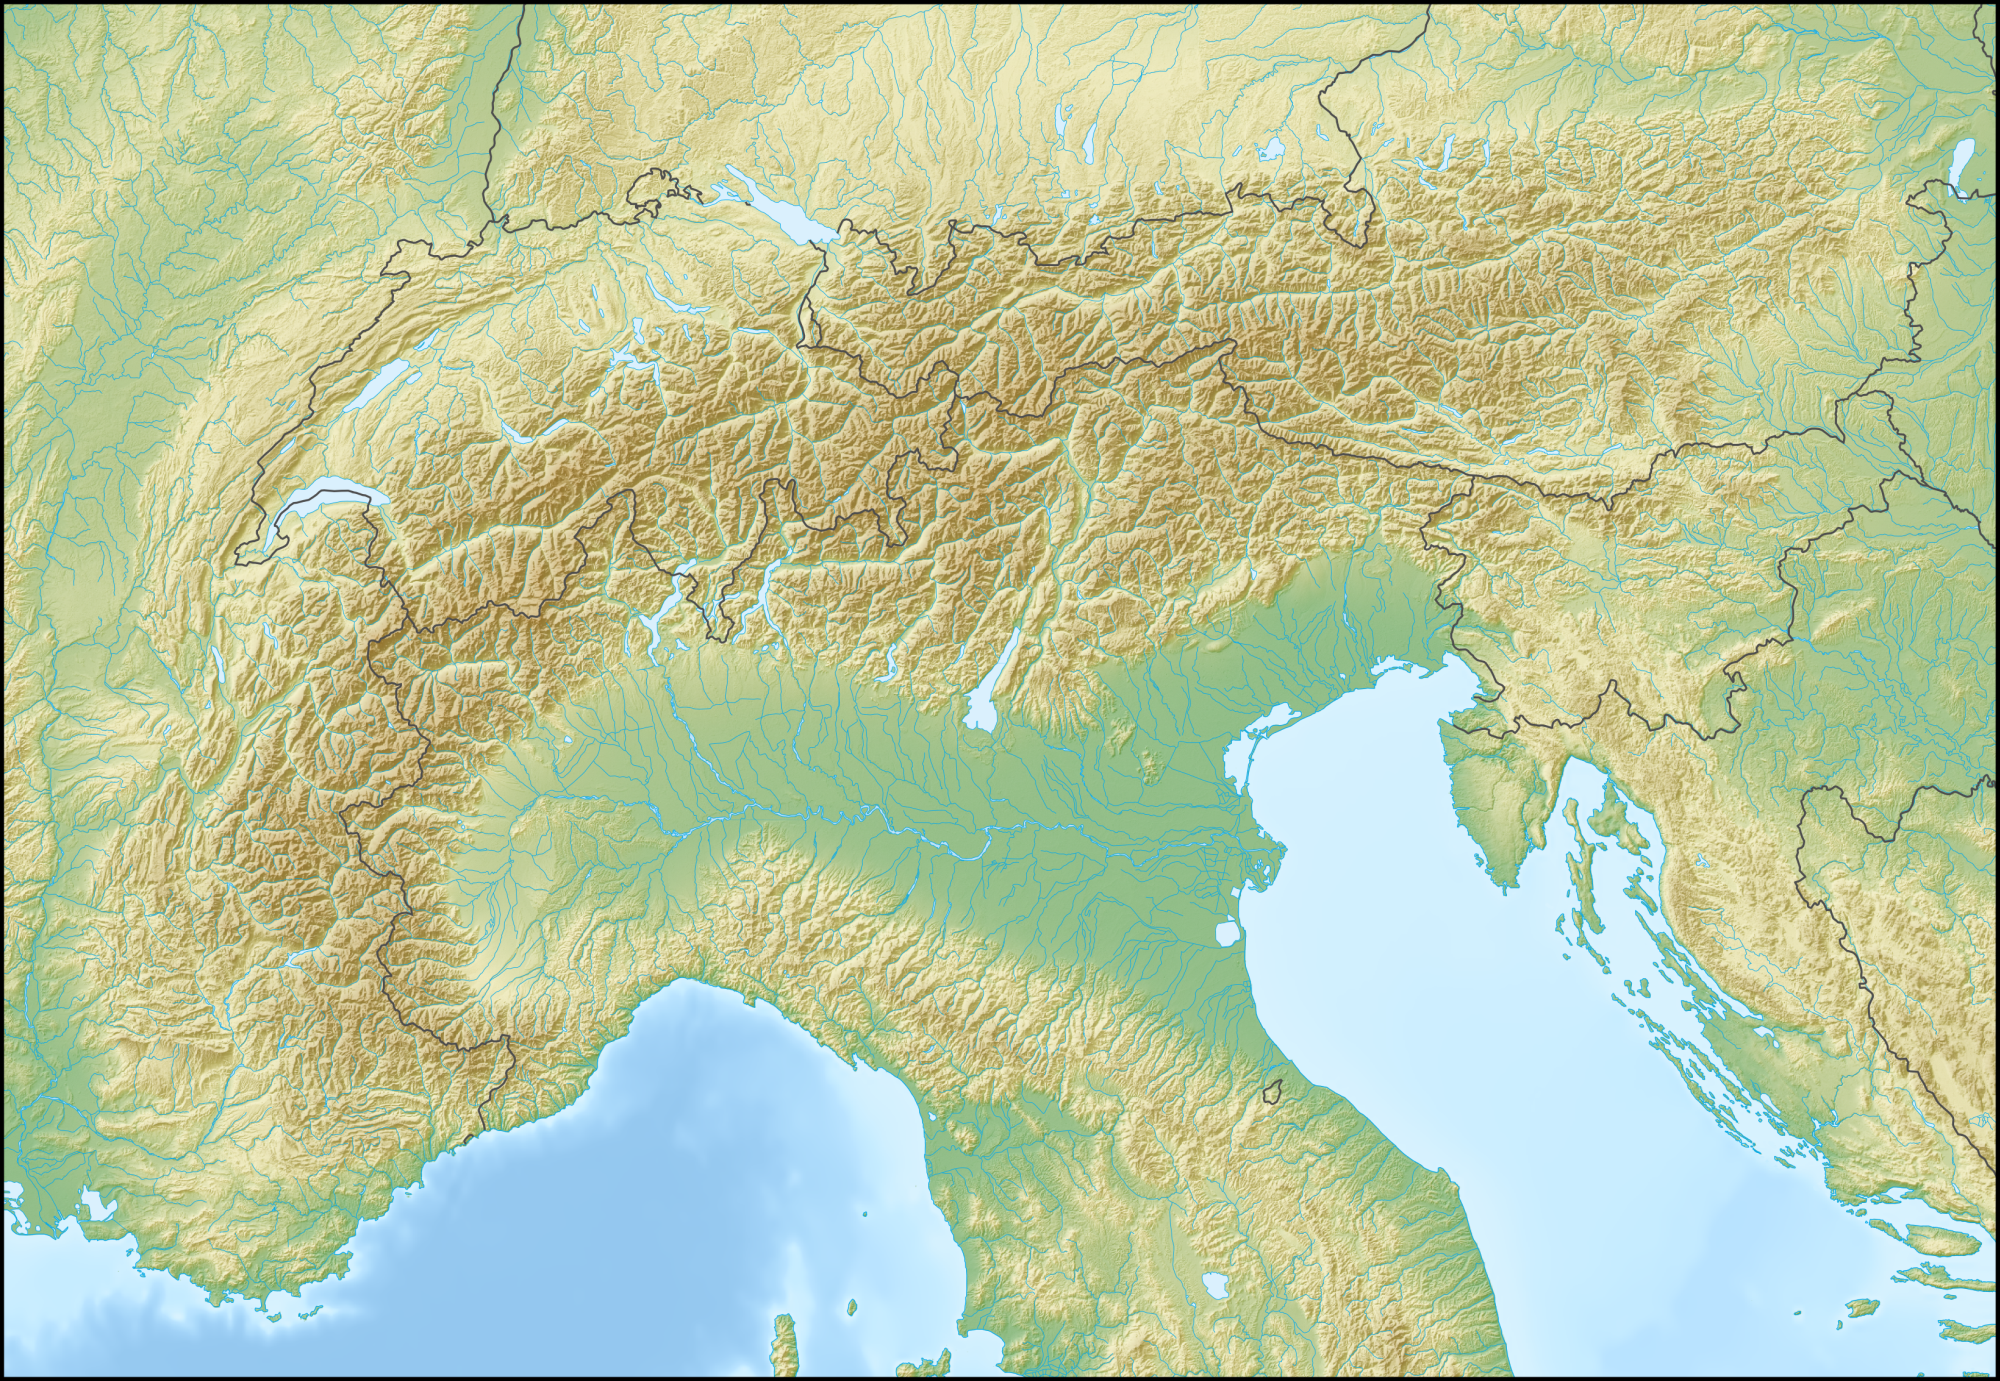 Datei:Alps location map.png – Wikipedia